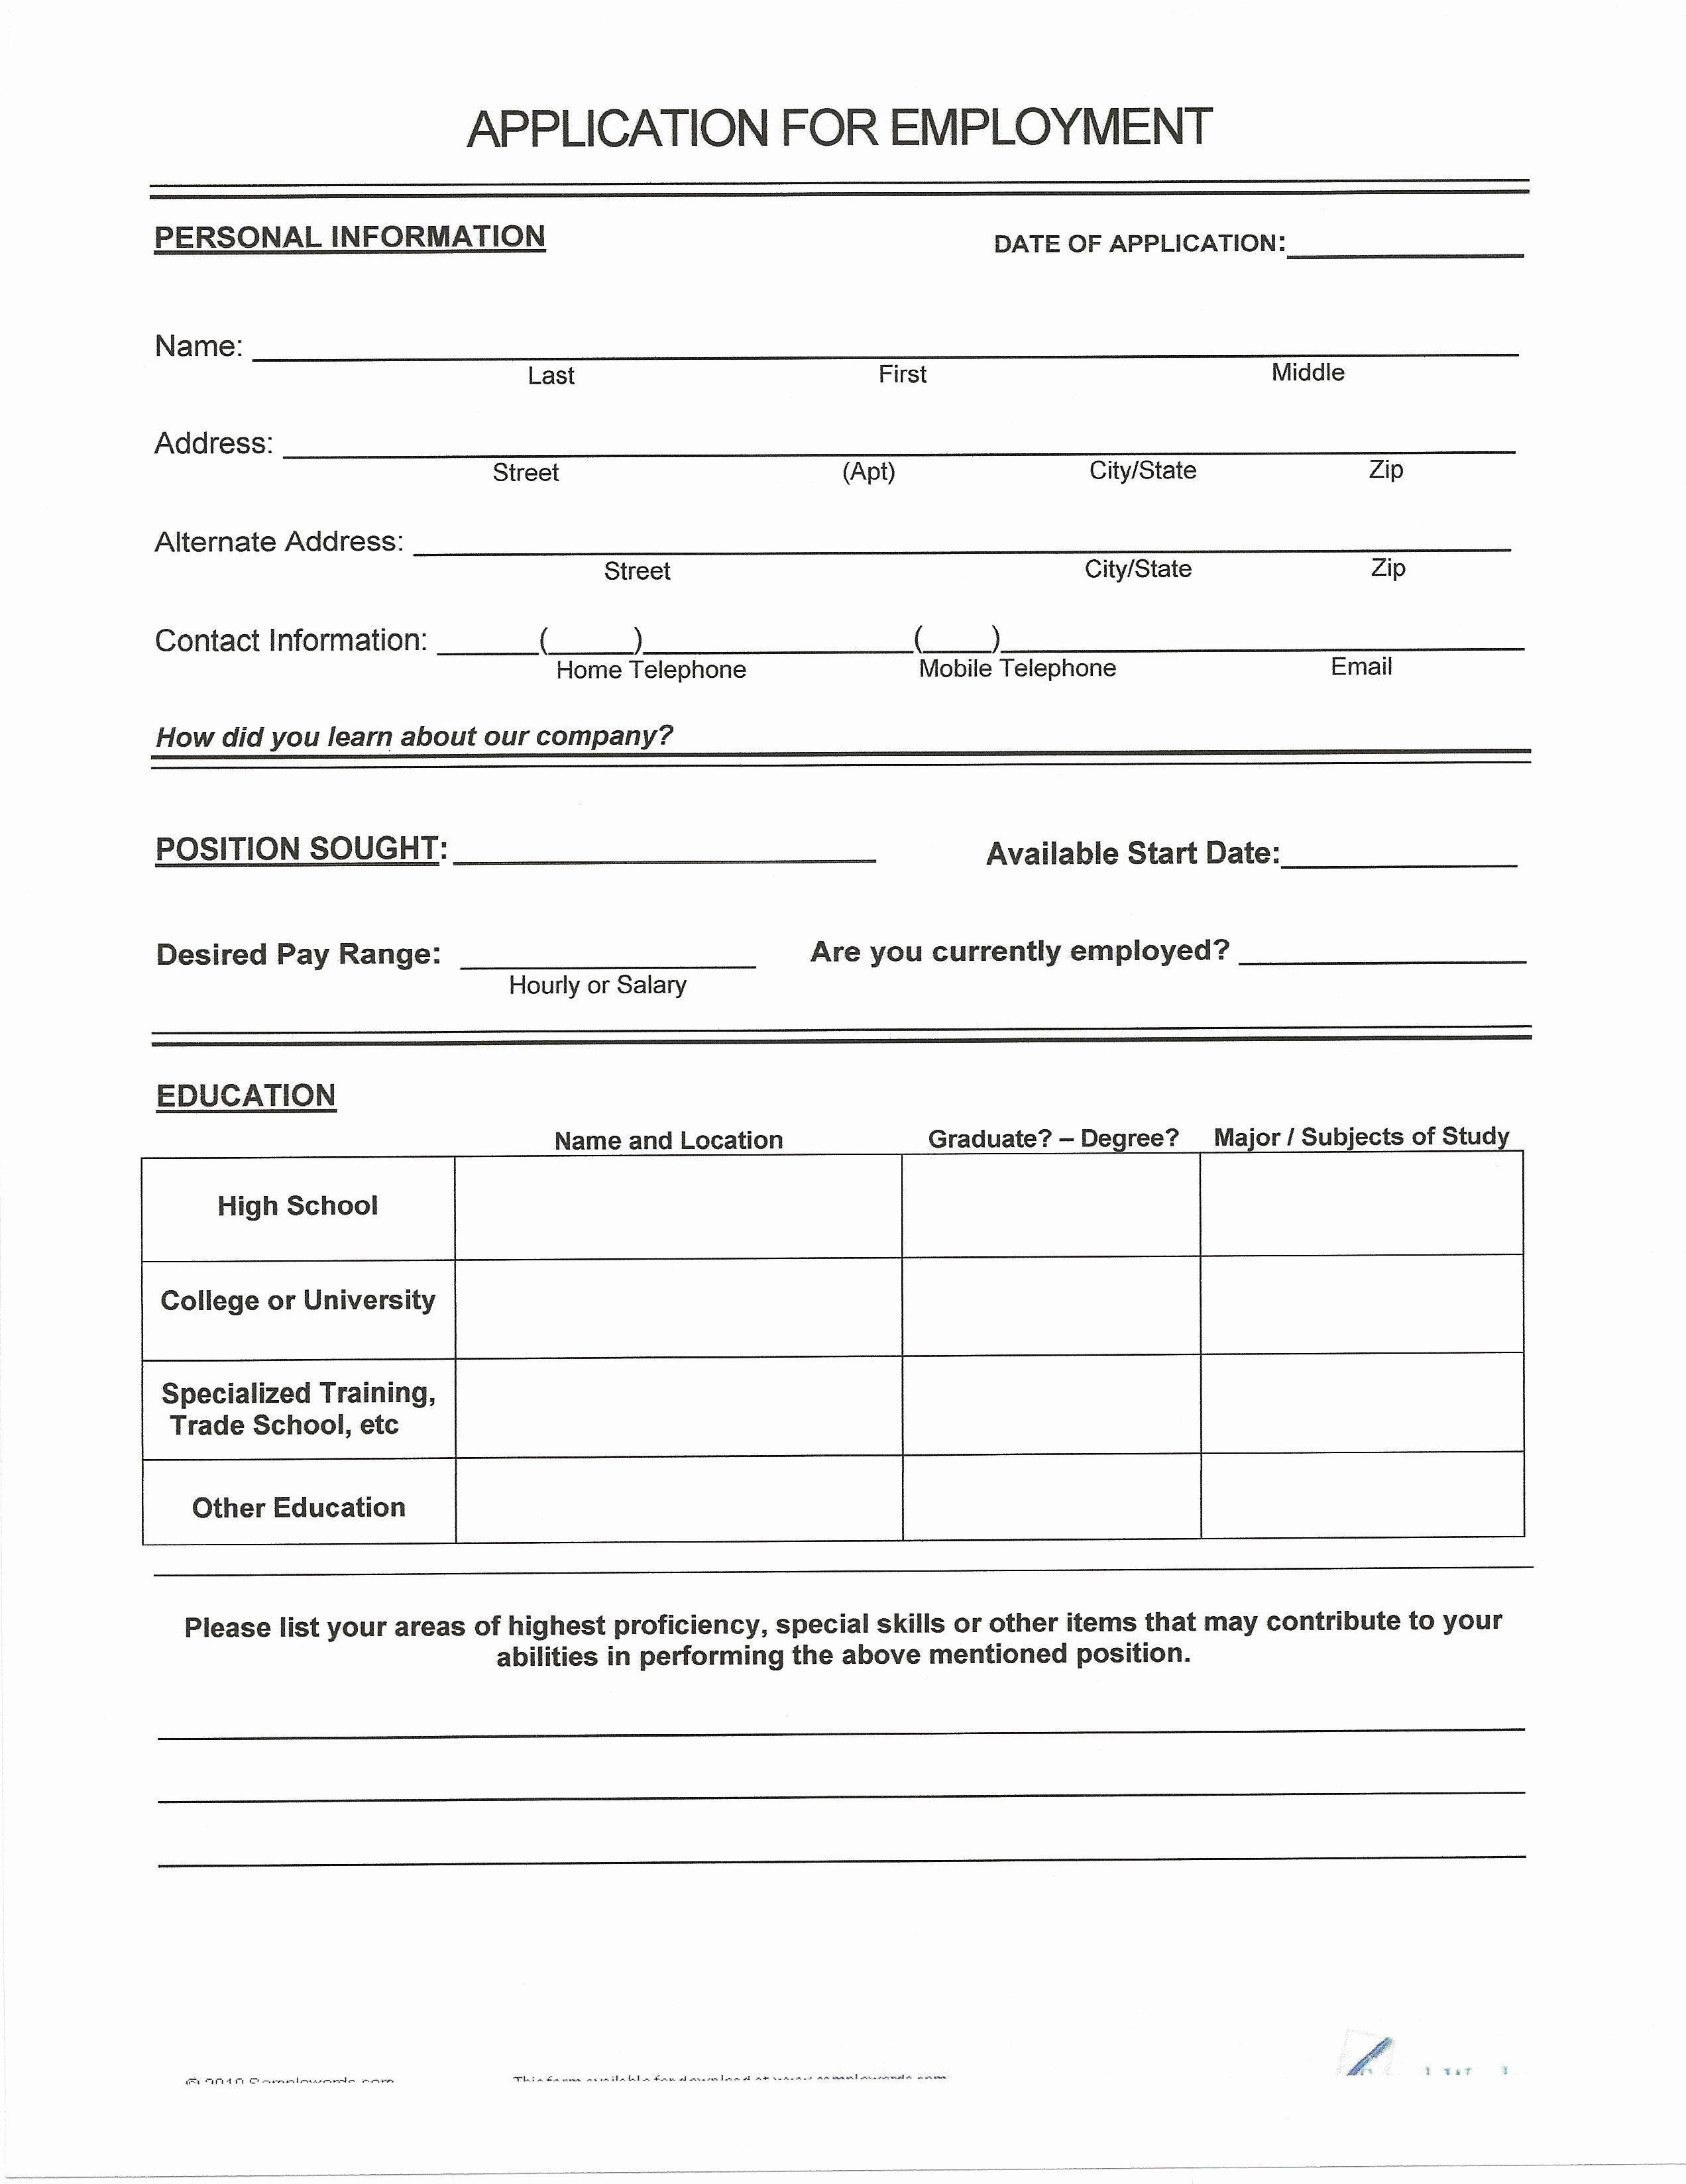 Pdf Fax Cover Sheet Fillable Best Of Staples Job Application Fillable Resume Cover Sheet